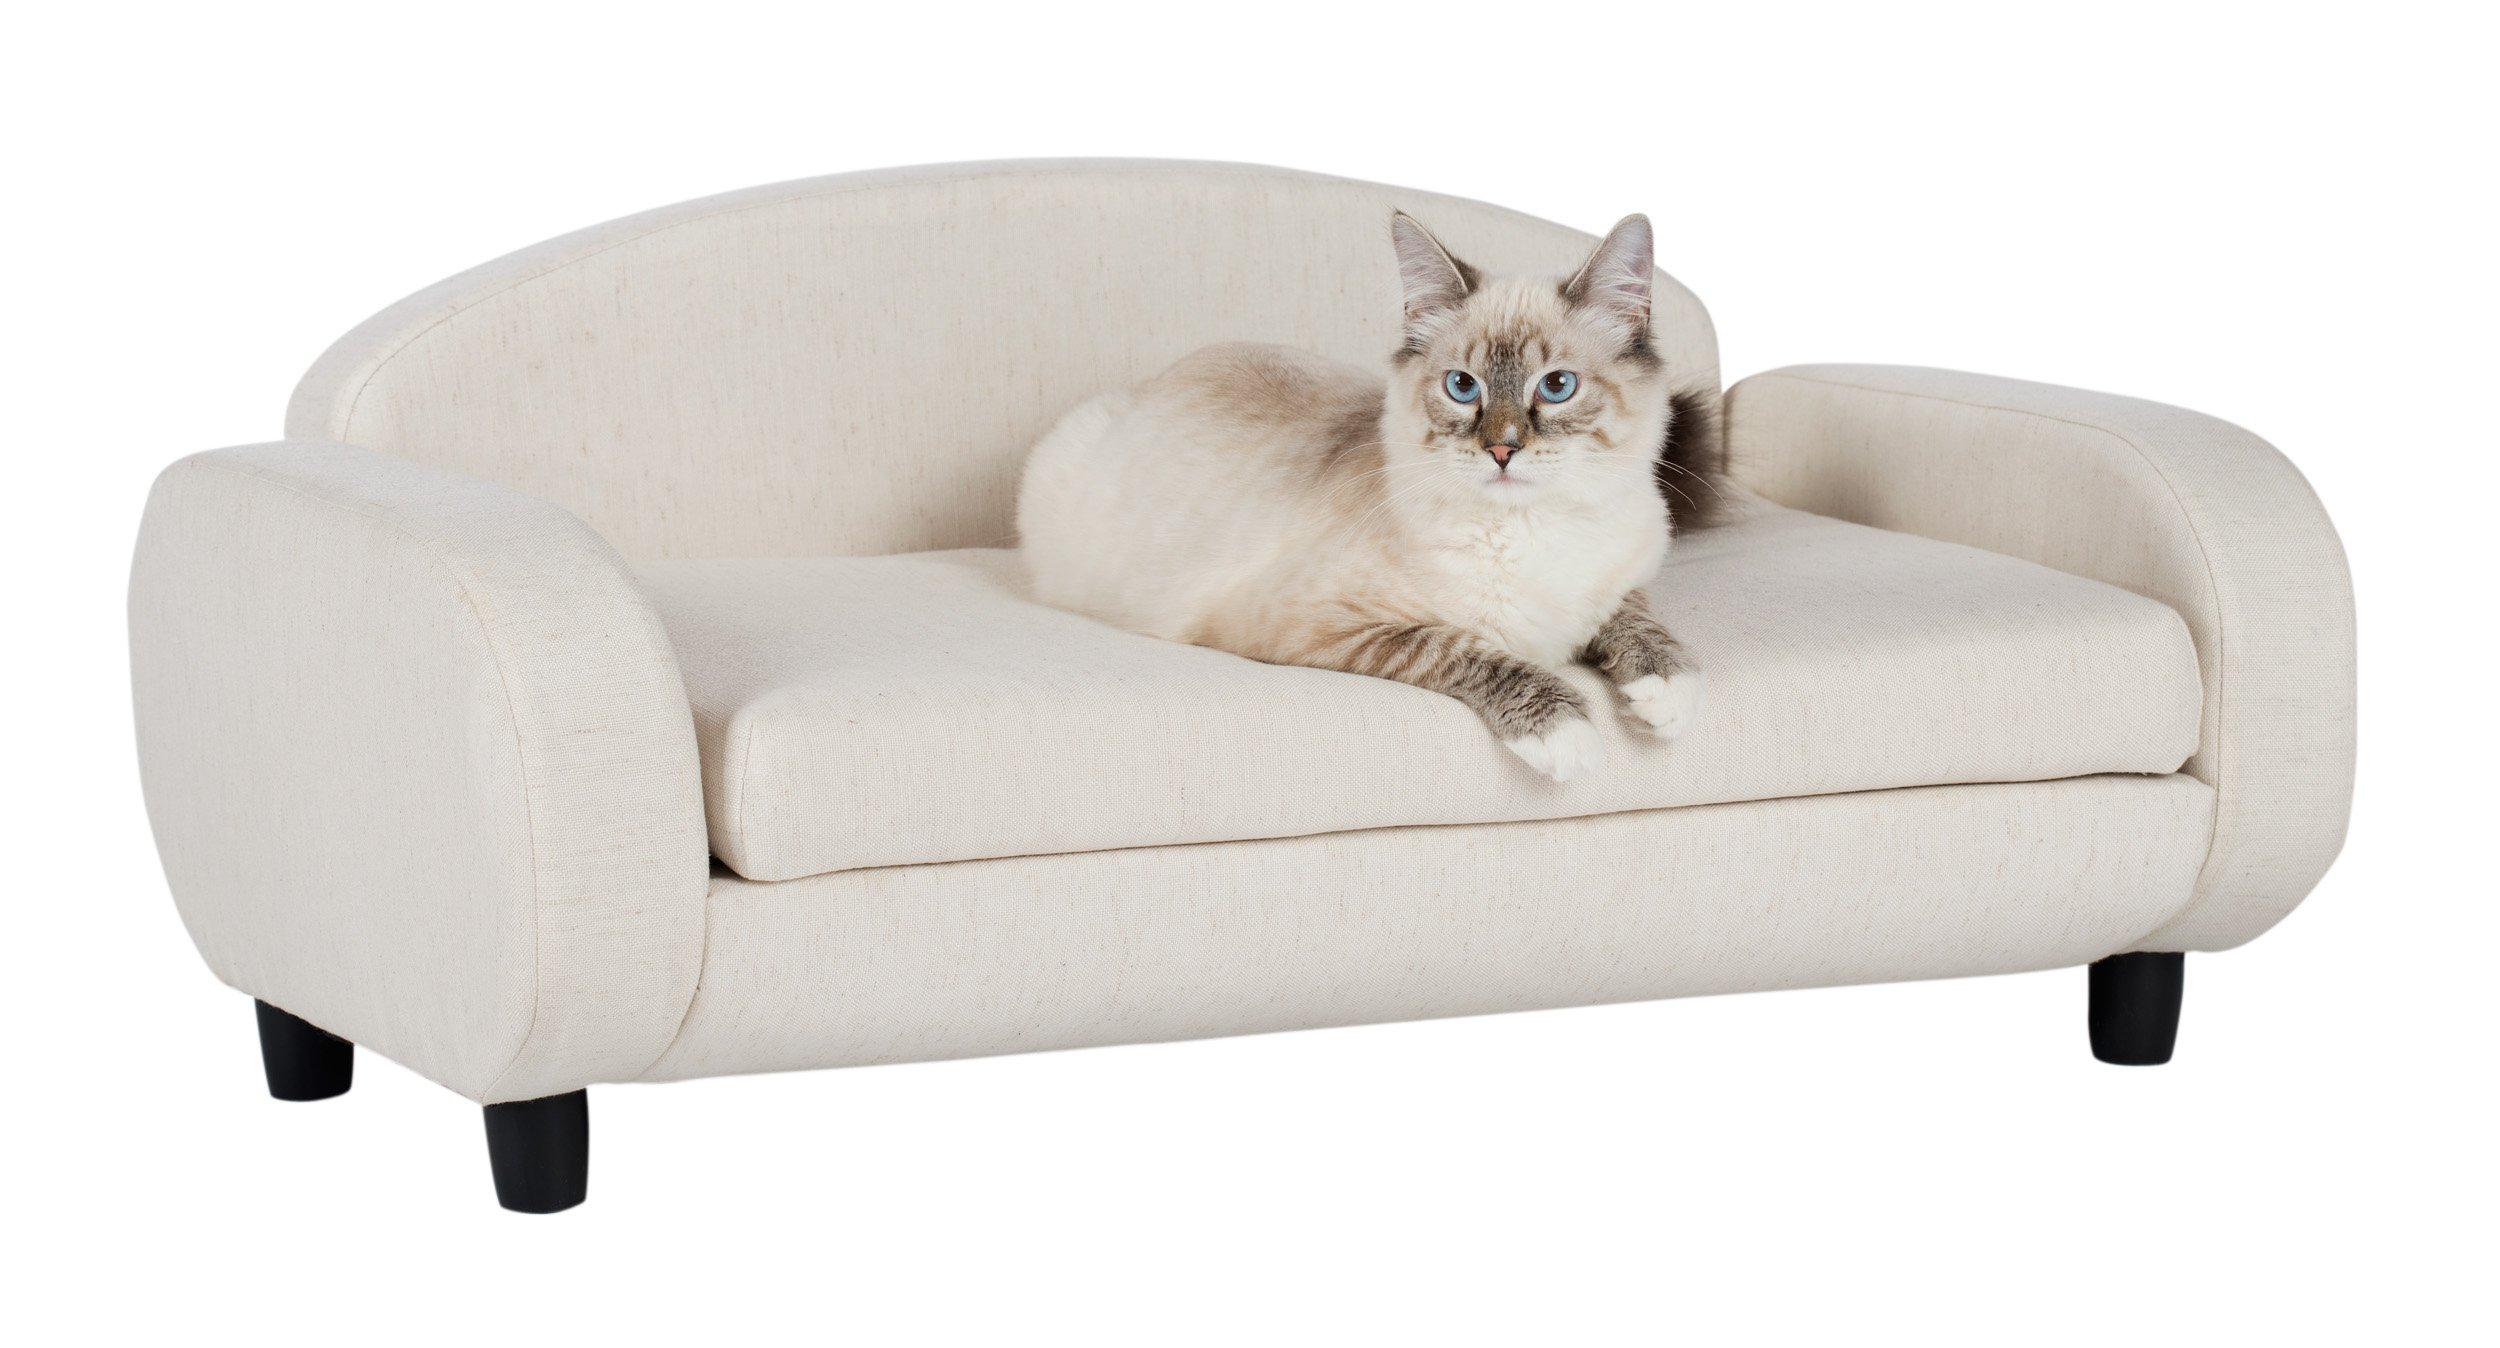 Paws & Purrs Pet Upholstered Sofa Bed, Oatmeal by Paws & Purrs